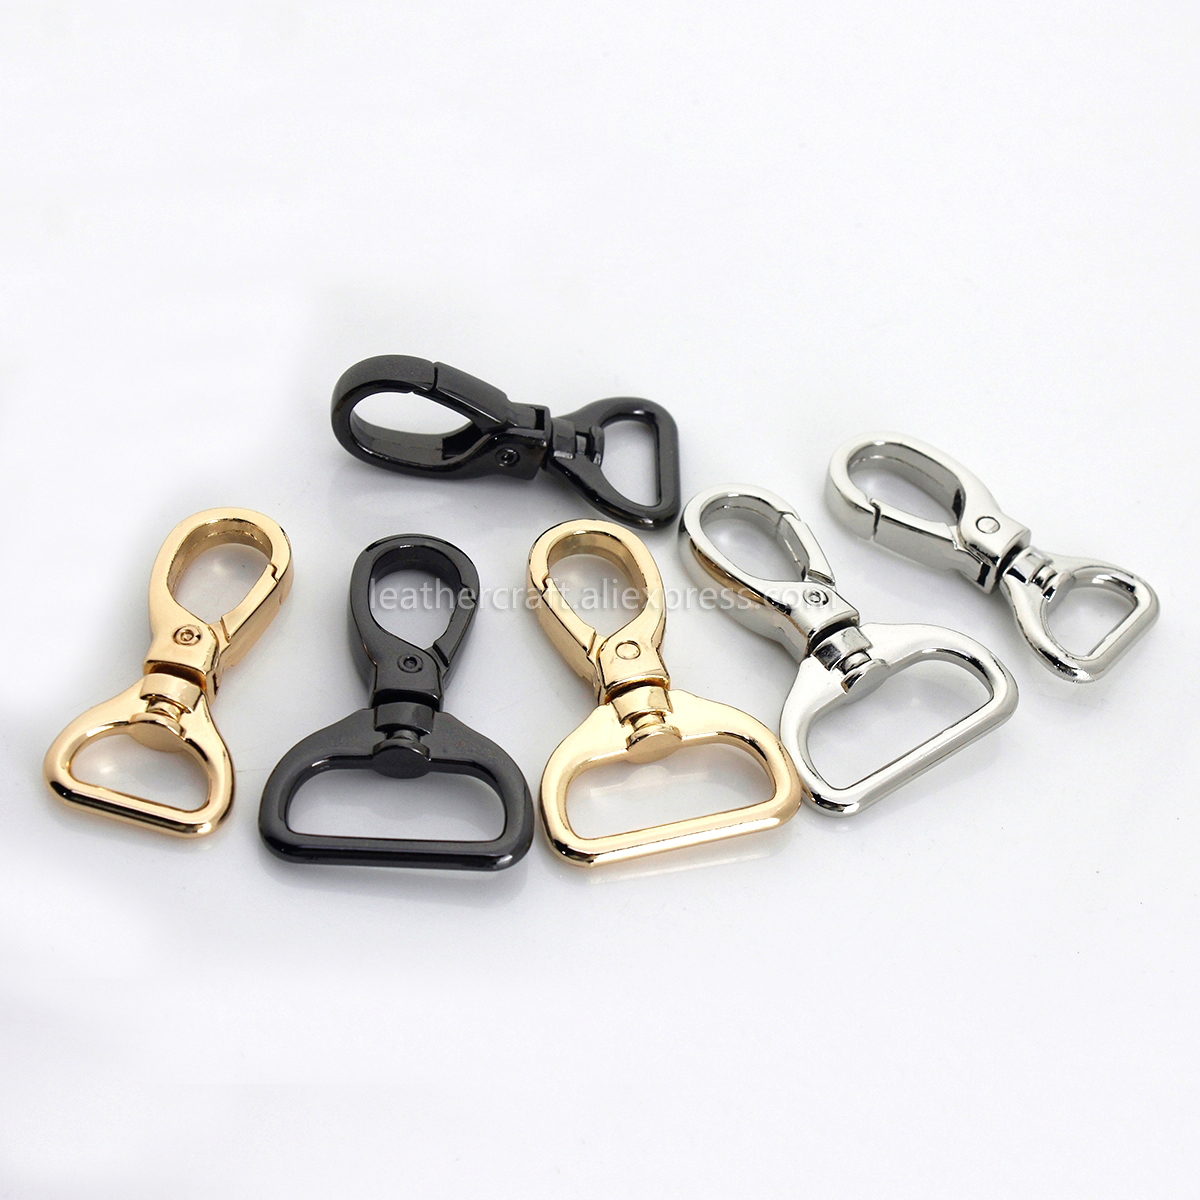 1pcs Metal 4 Sizes Snap Hook Trigger Lobster Clasps Clips Flat Bottom Spring Gate Leather Craft Pet Leash Bag Strap Belt Webbing